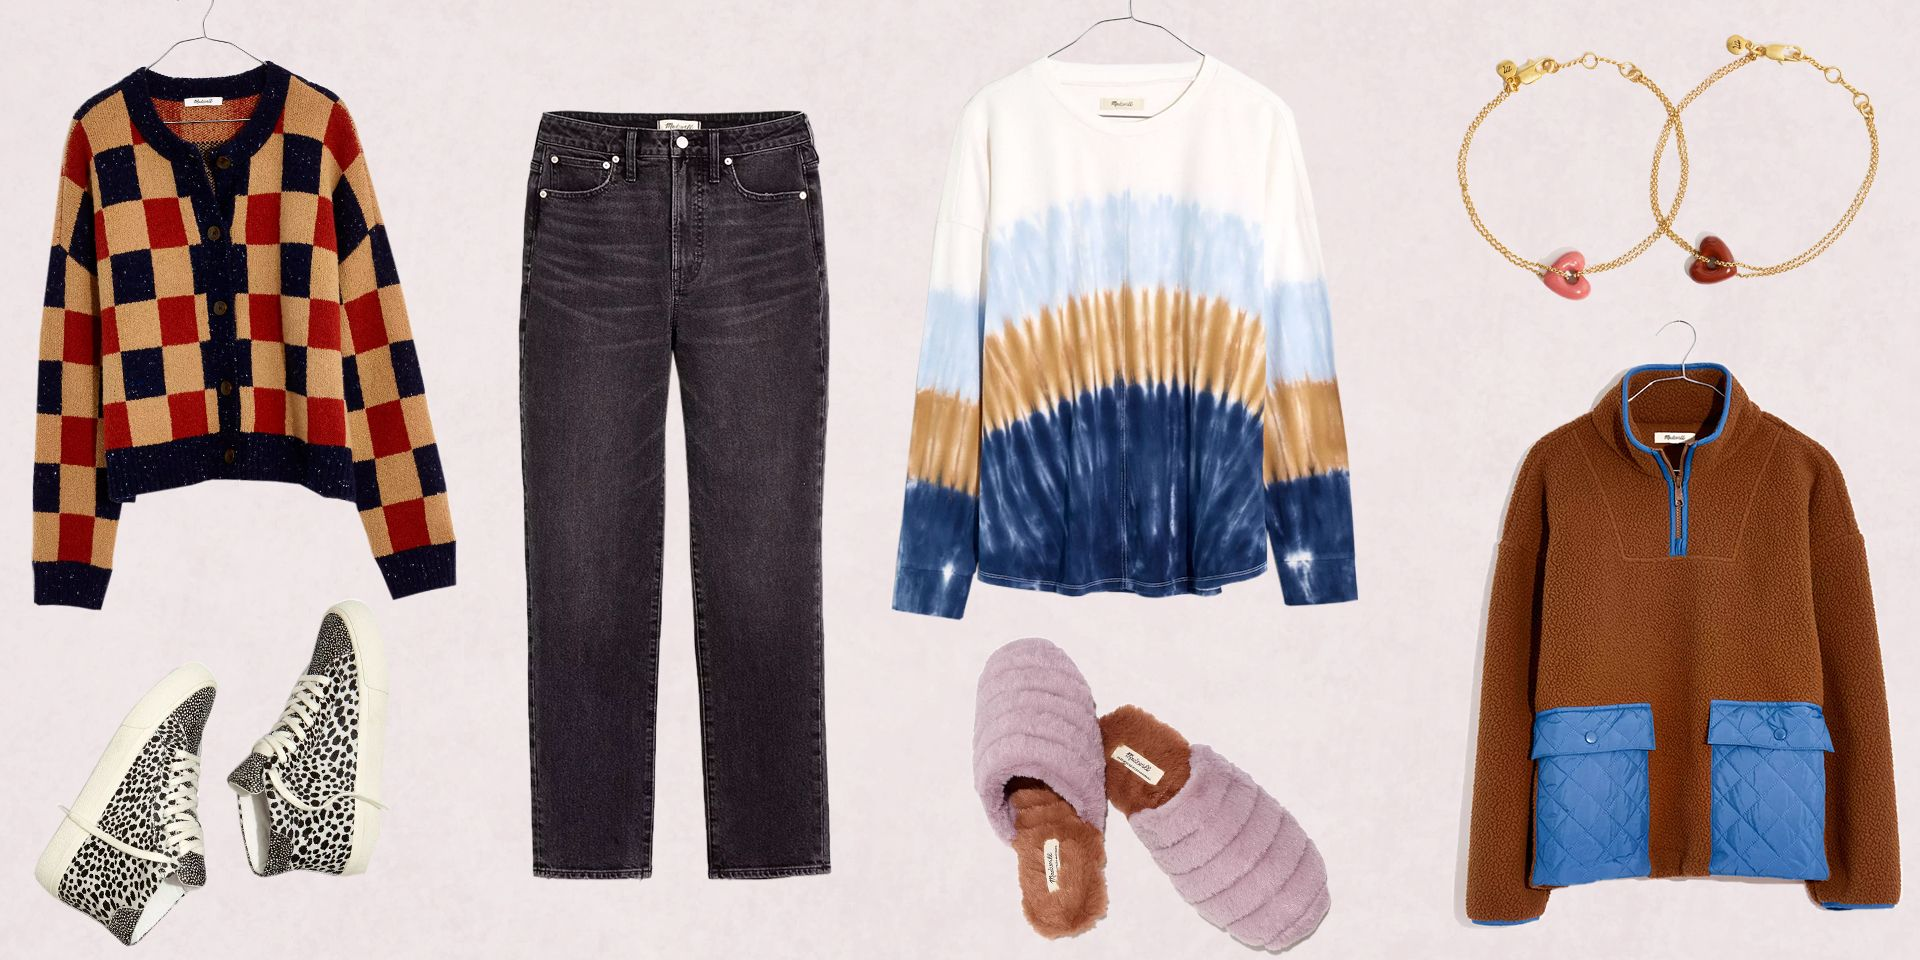 Madewell S Black Friday Sale 2020 What To Know And Best Deals So Far